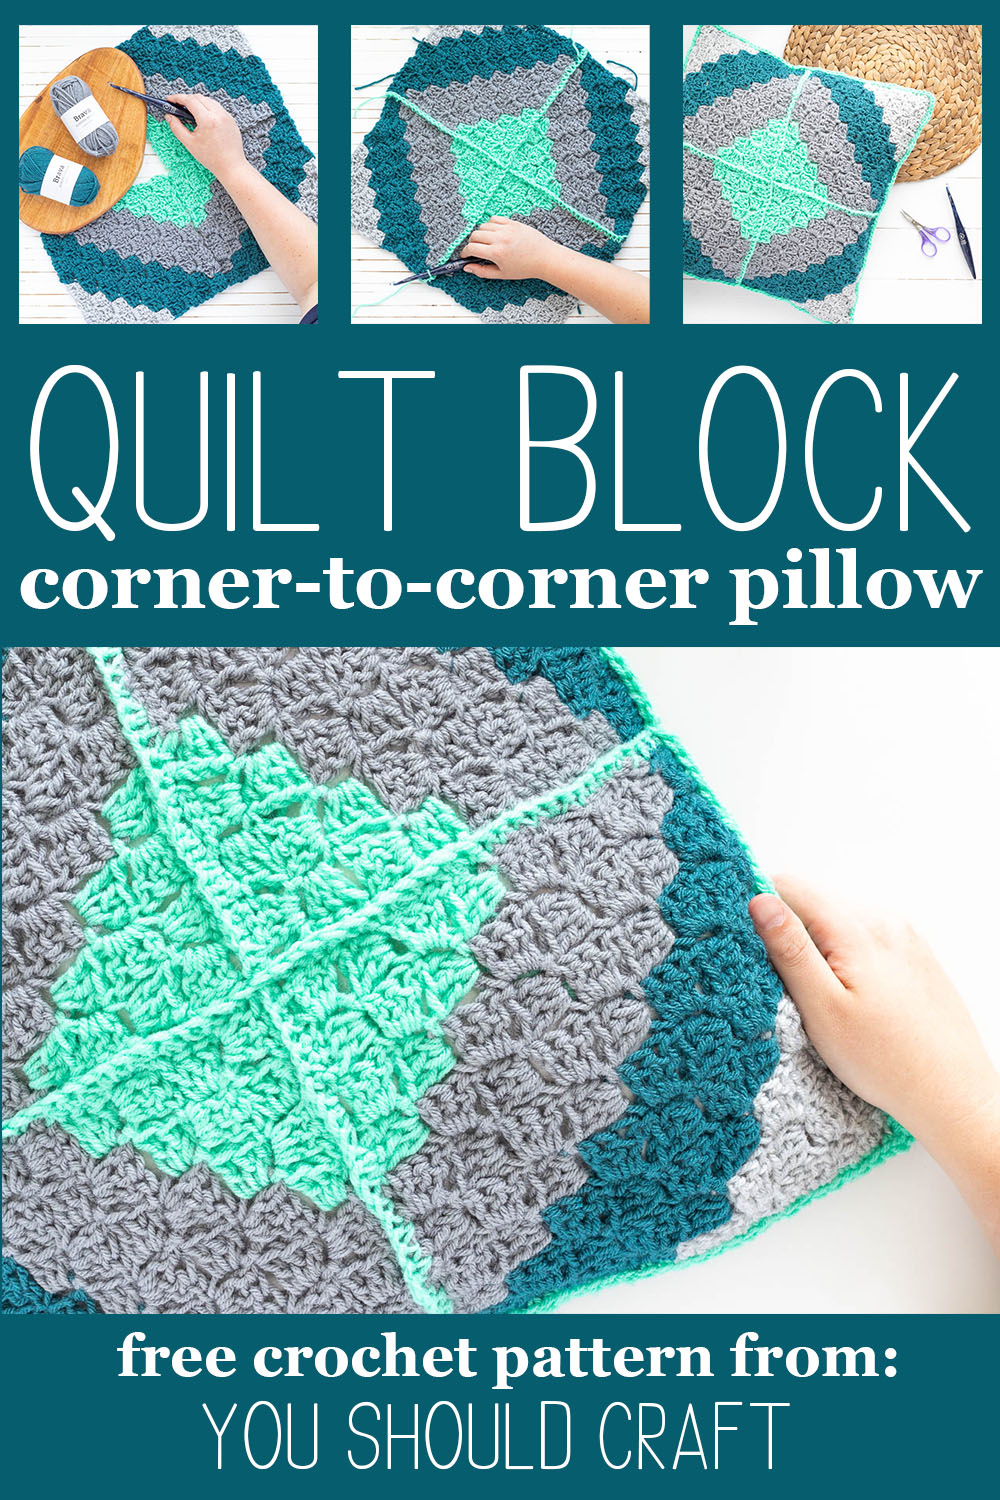 """collage of images of a crochet pillow with text """"quilt block corner-to-corner pillow - free crochet pattern from you should craft"""""""